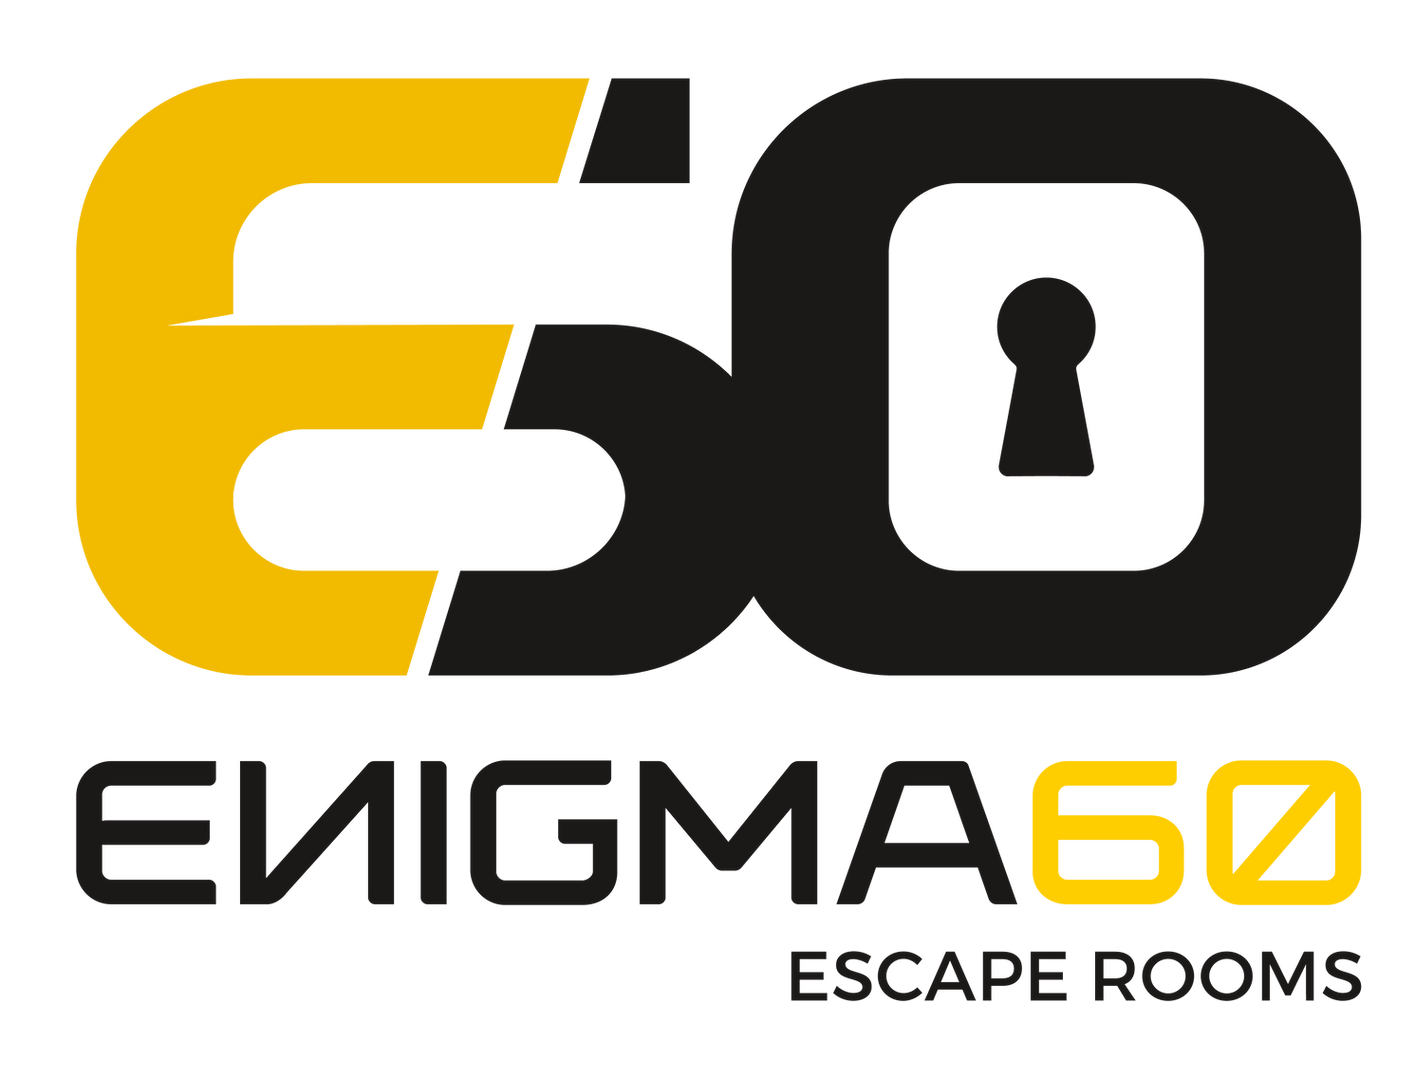 Enigma 60 - Escape Rooms